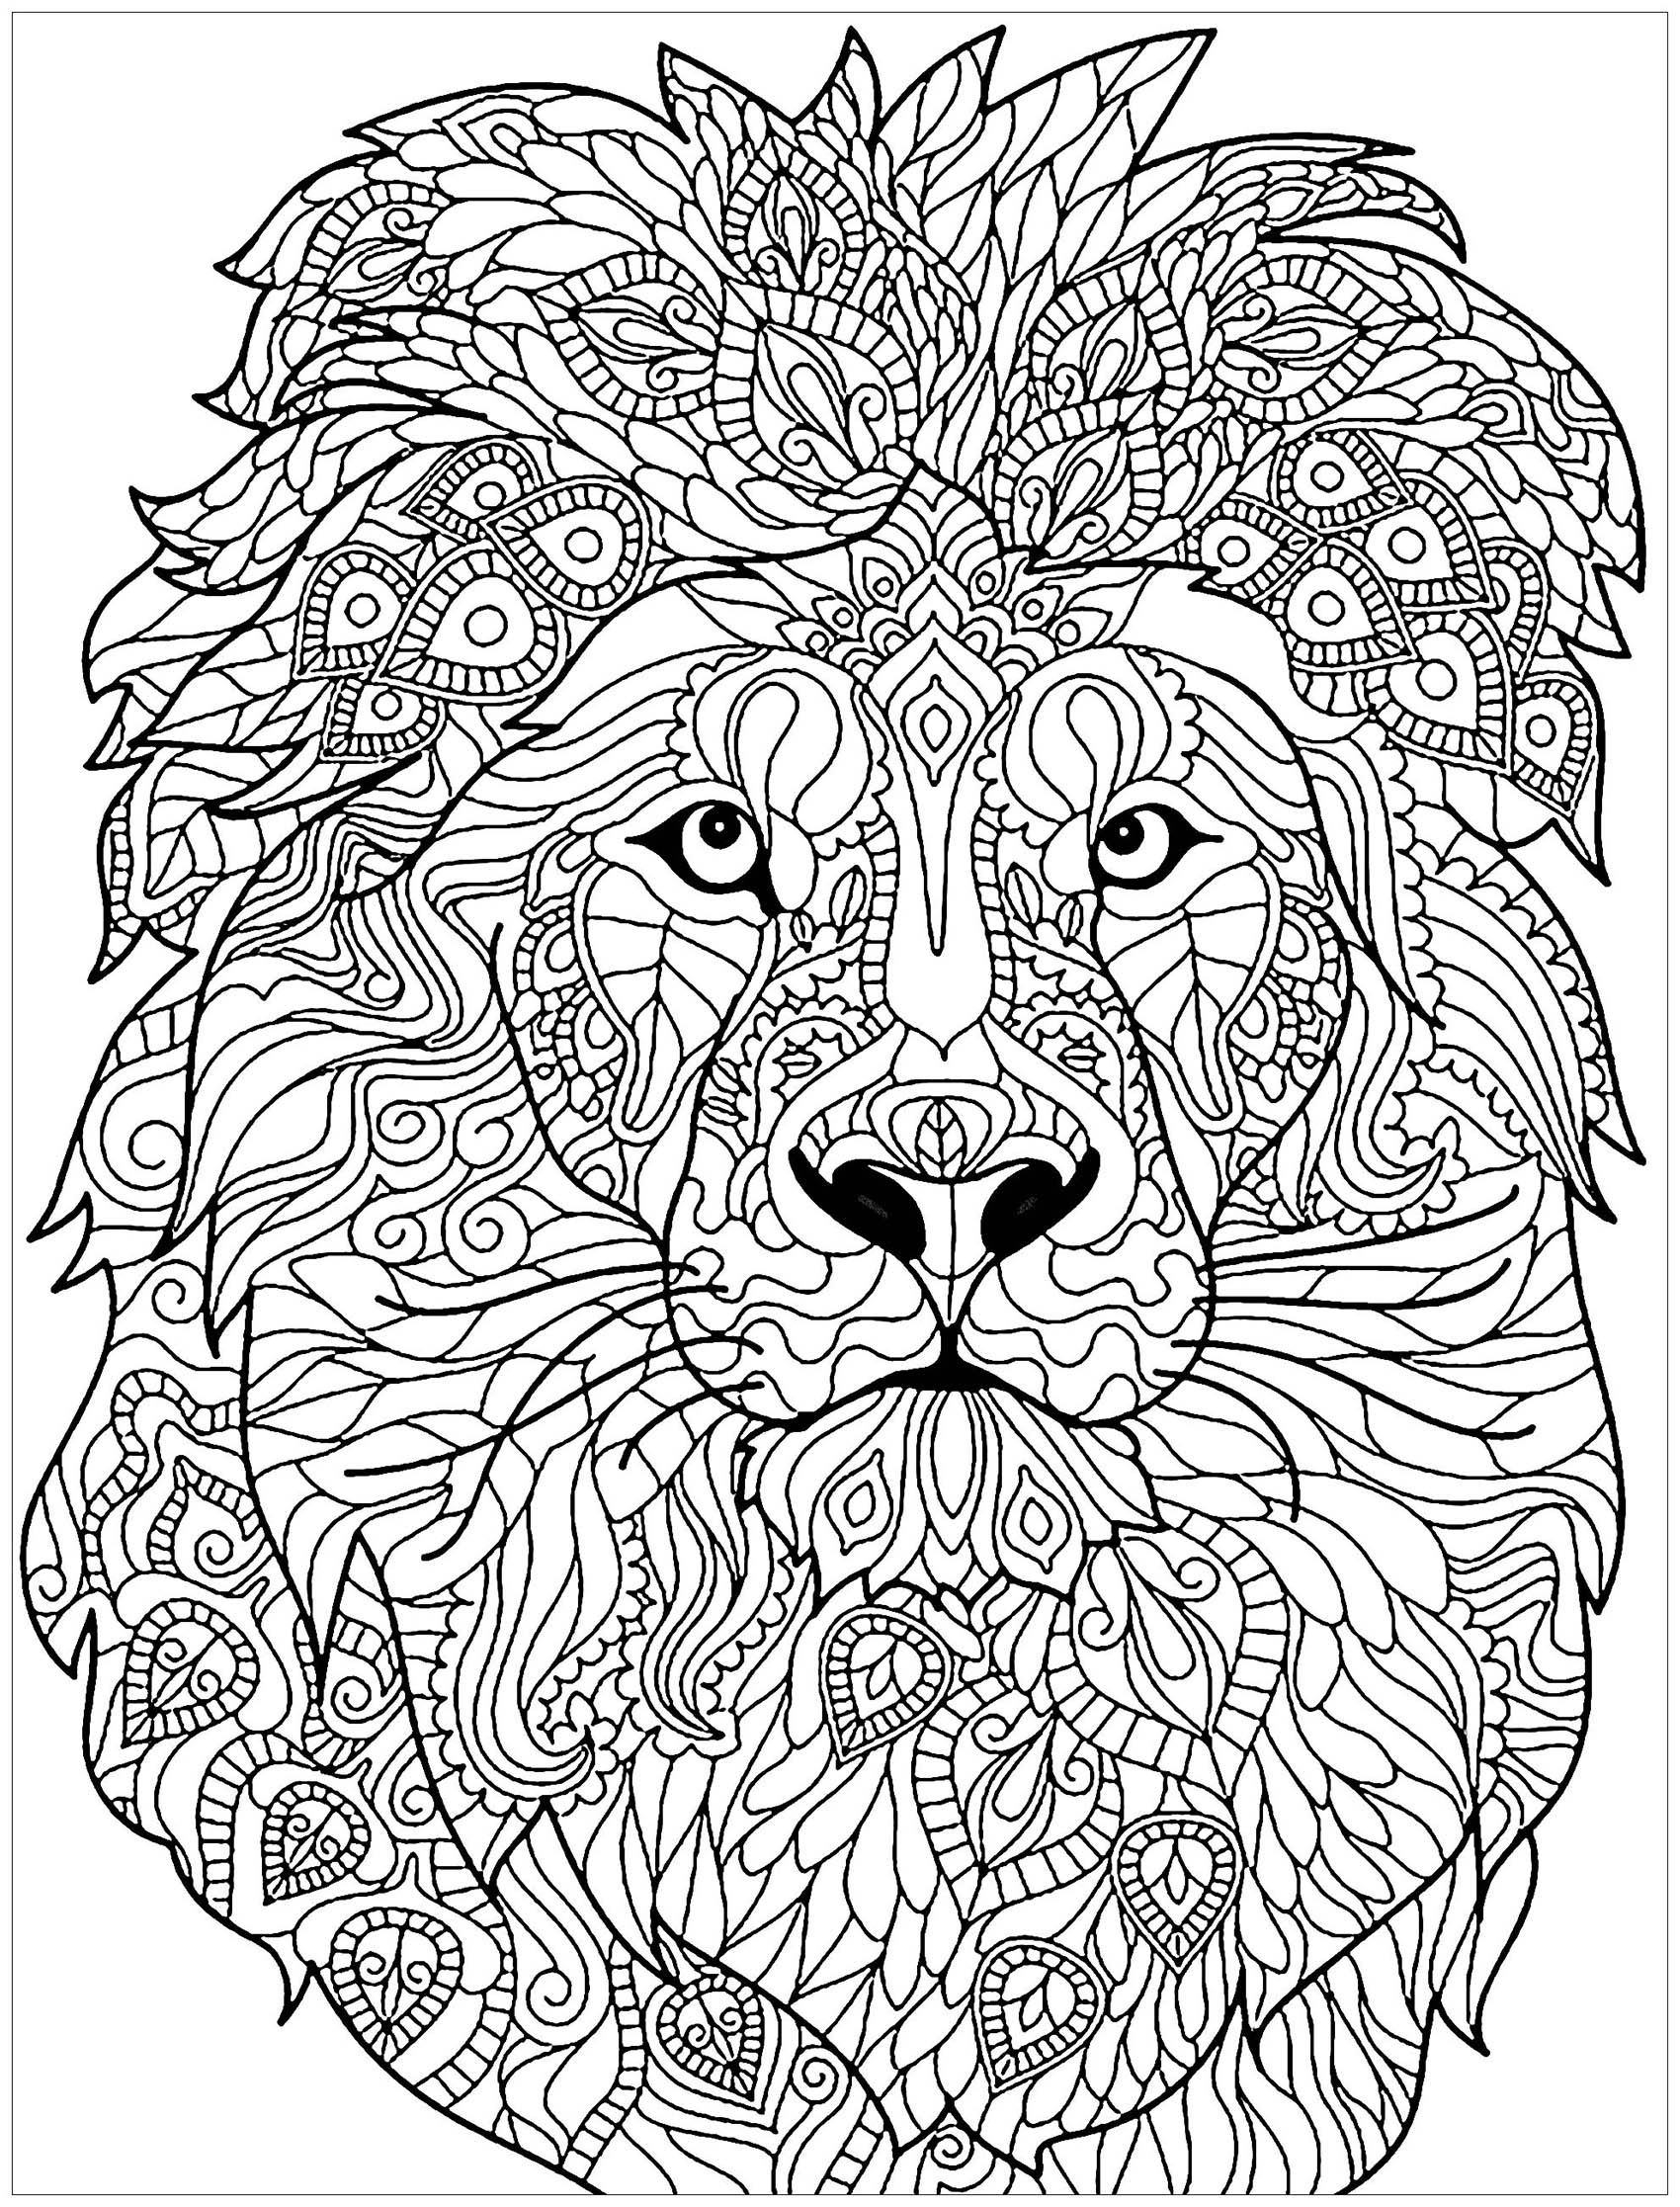 coloring lion pages lion free to color for kids lion kids coloring pages coloring lion pages